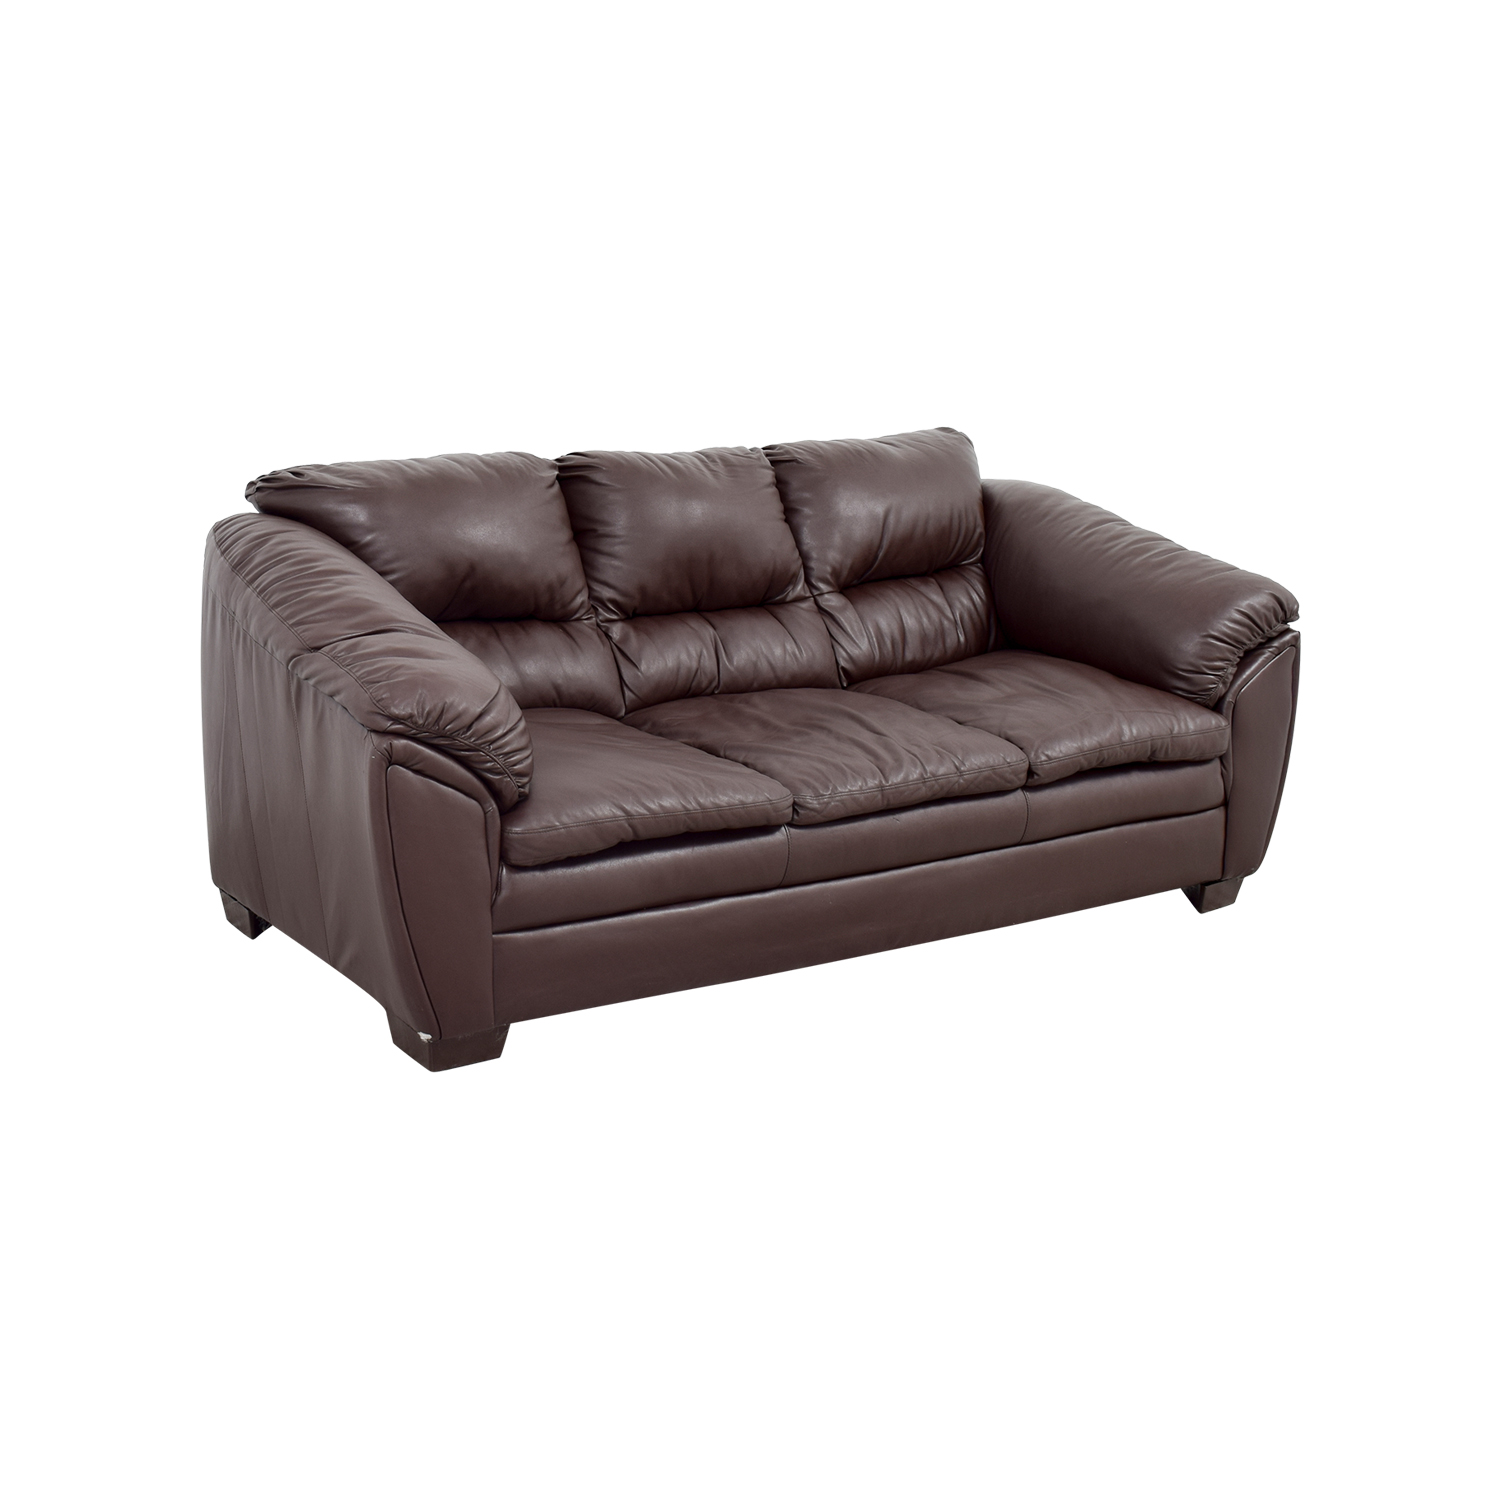 Buying A Second Hand Sofa 68 Off Brown Leather Sofa Sofas